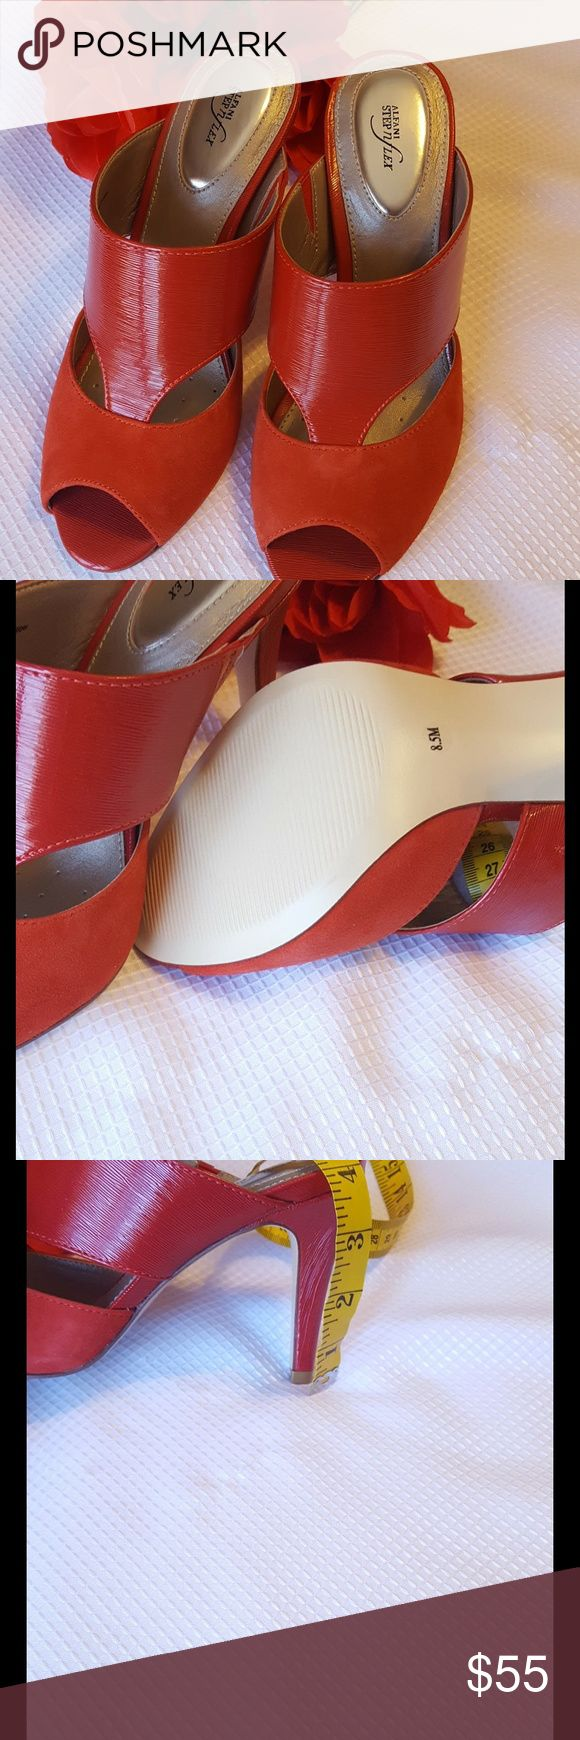 Alfani Step and Flex Ladies Shoes NWOT RED Alfani Step and Flex  Red Slip Ons Size 8.5 M Alfani Step and Flex Shoes Heels